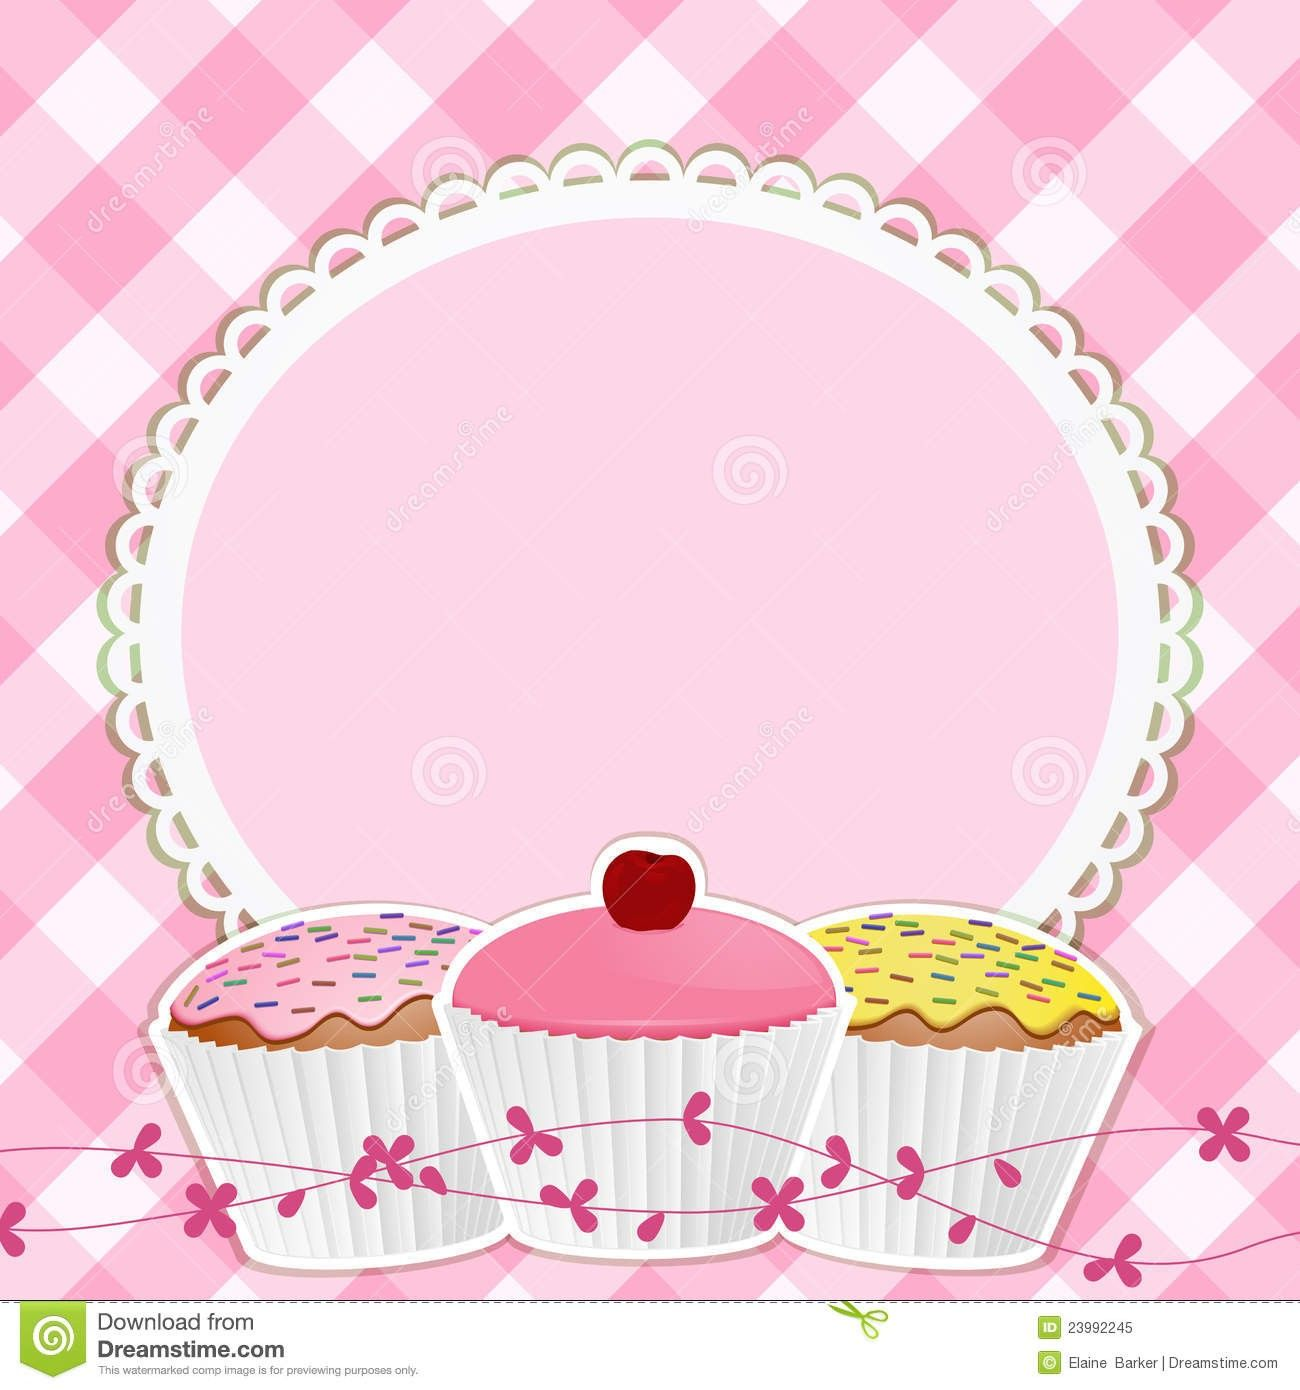 Cake borders clipart clip art library library Cupcakes Clipart Border \\x3cb\\x3ecupcake border clipart\\x3c/b\\x3e ... clip art library library